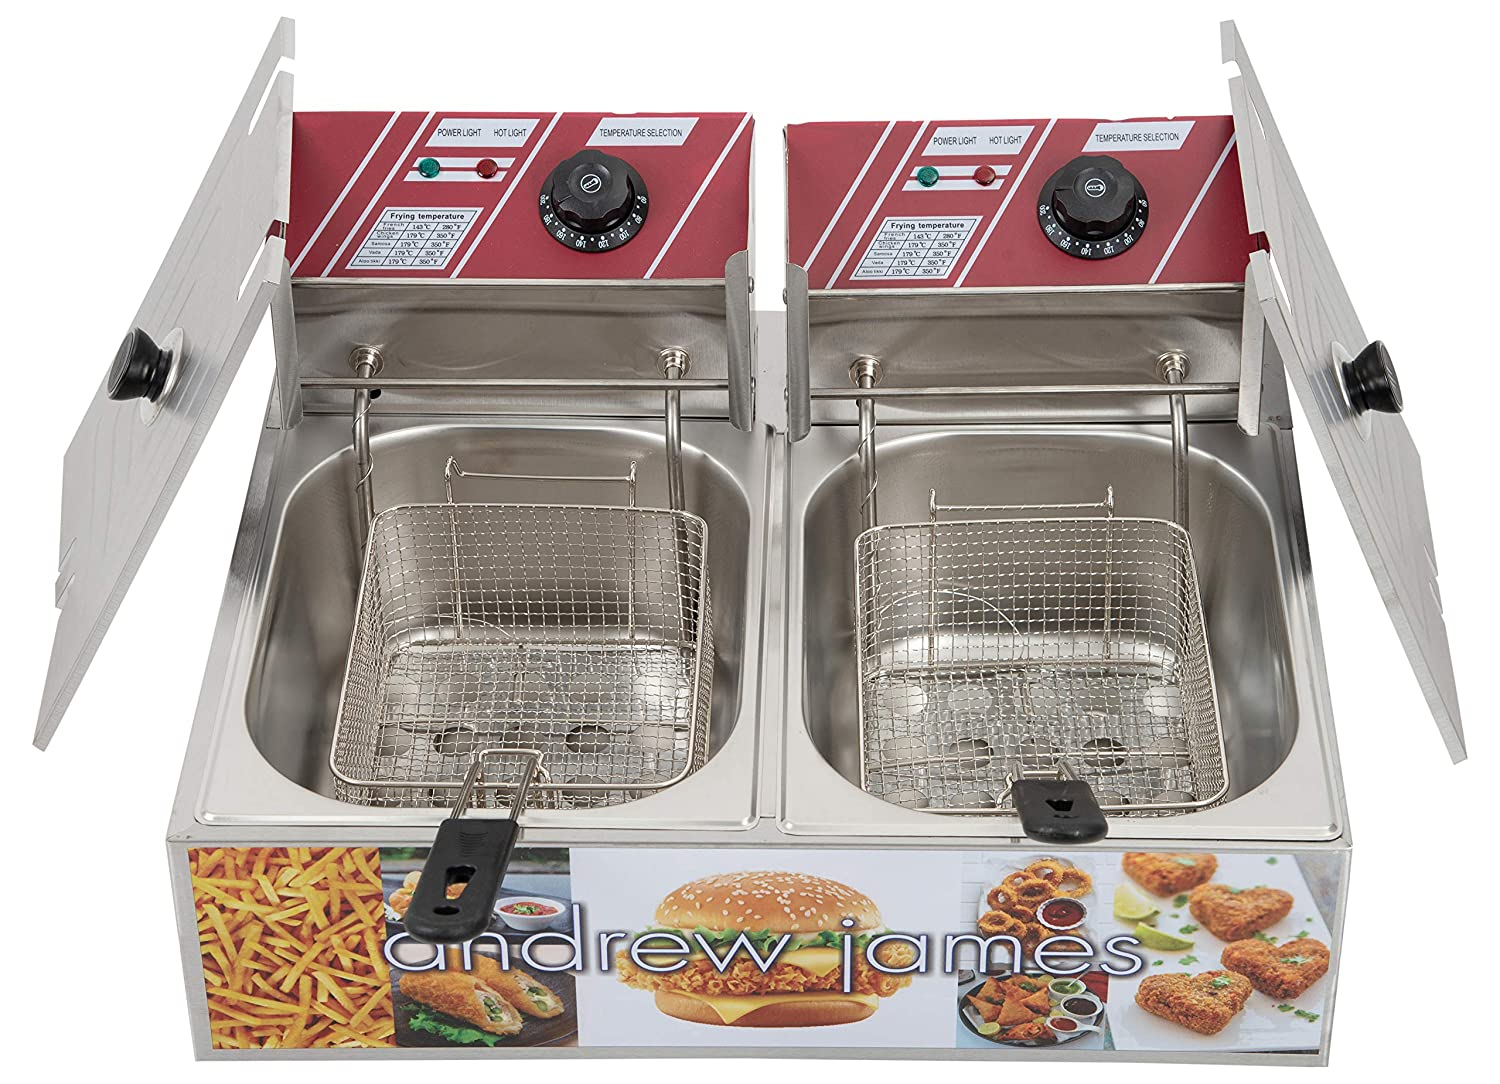 ANDREW JAMES Stainless Steel Deep Fryer 6 Ltrs, Silver